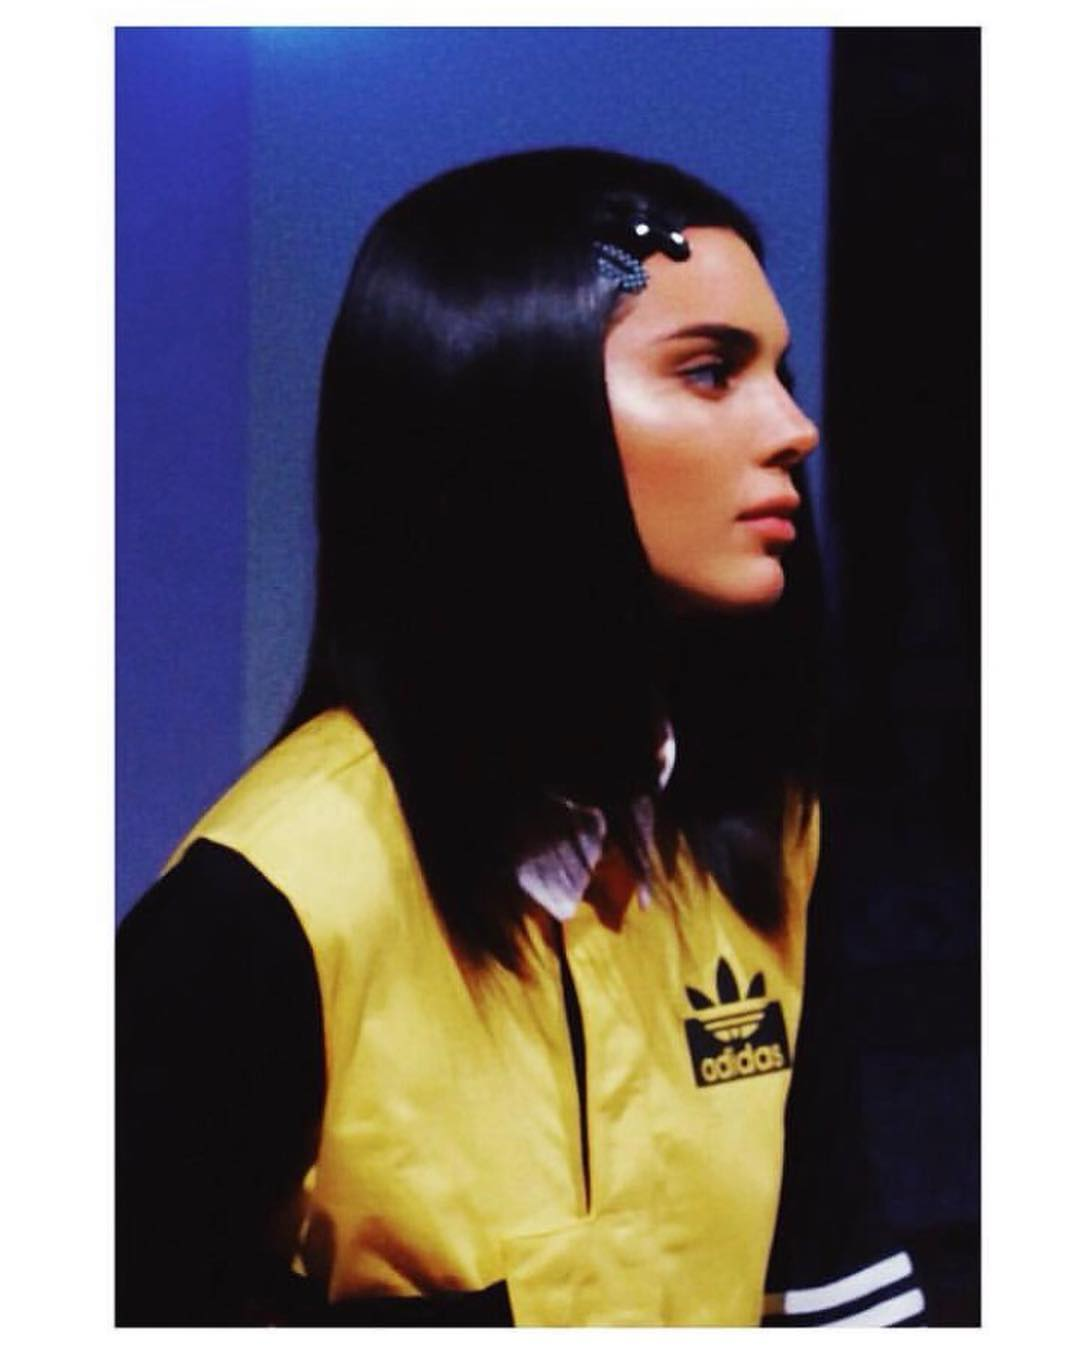 Kendall Jenner donning a clinging Adidas crop top with full sleeves, shirt collar and striped